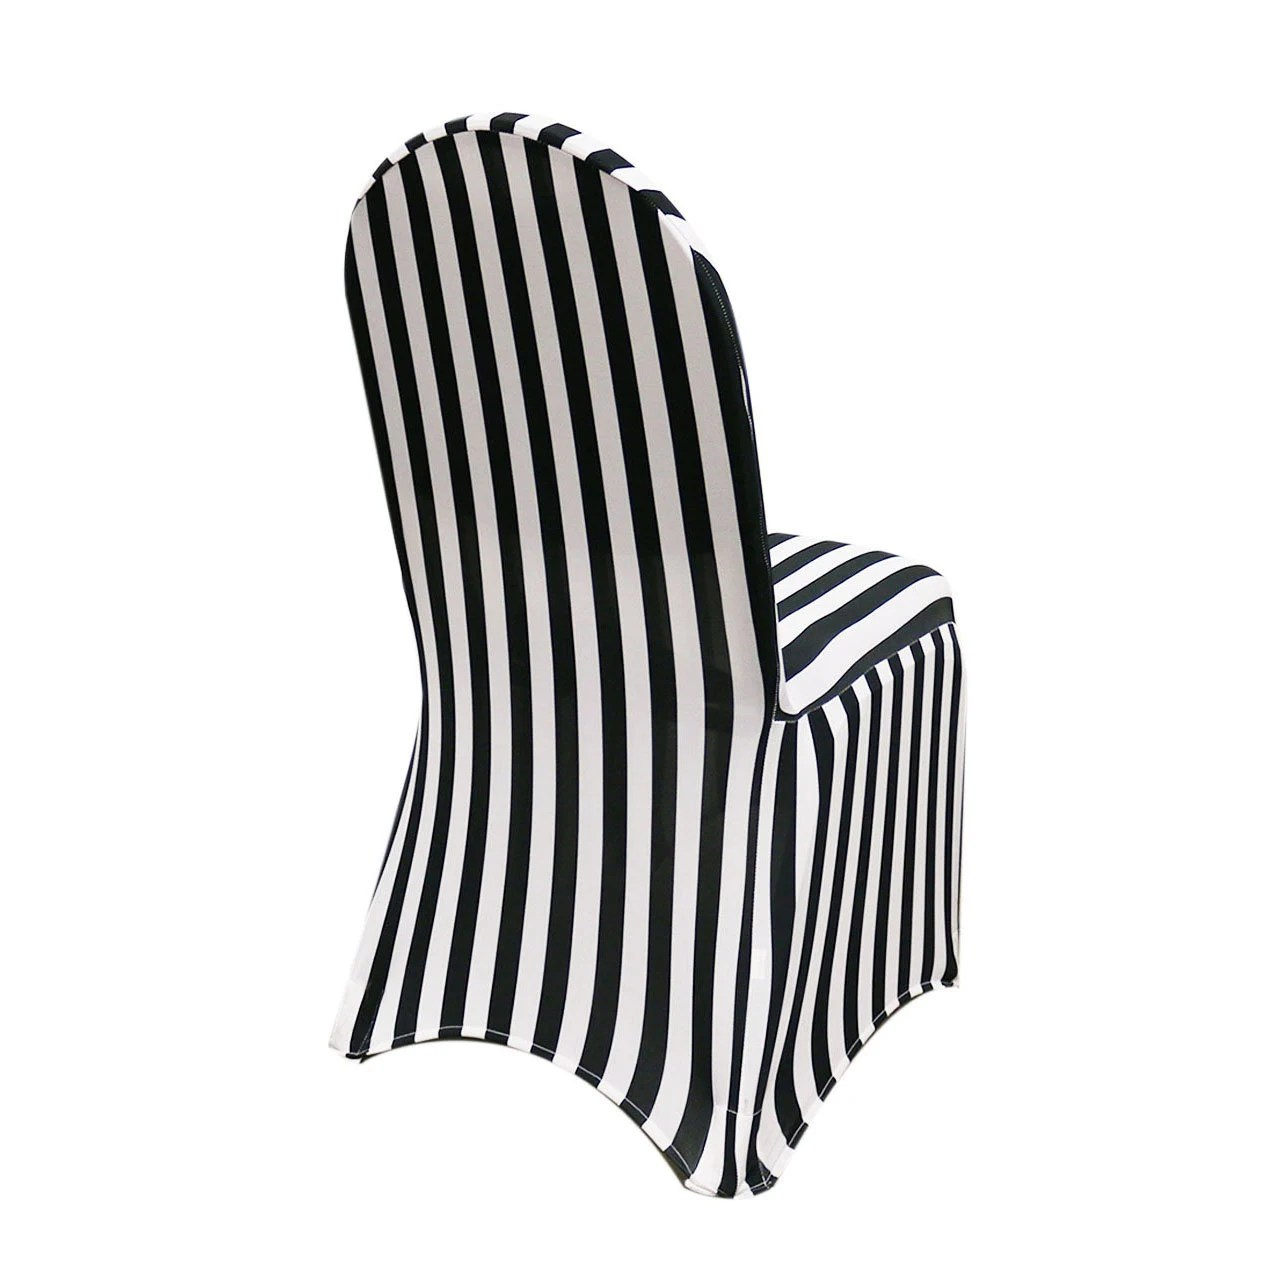 black white striped chair stressless chairs john lewis spandex cover and stretch